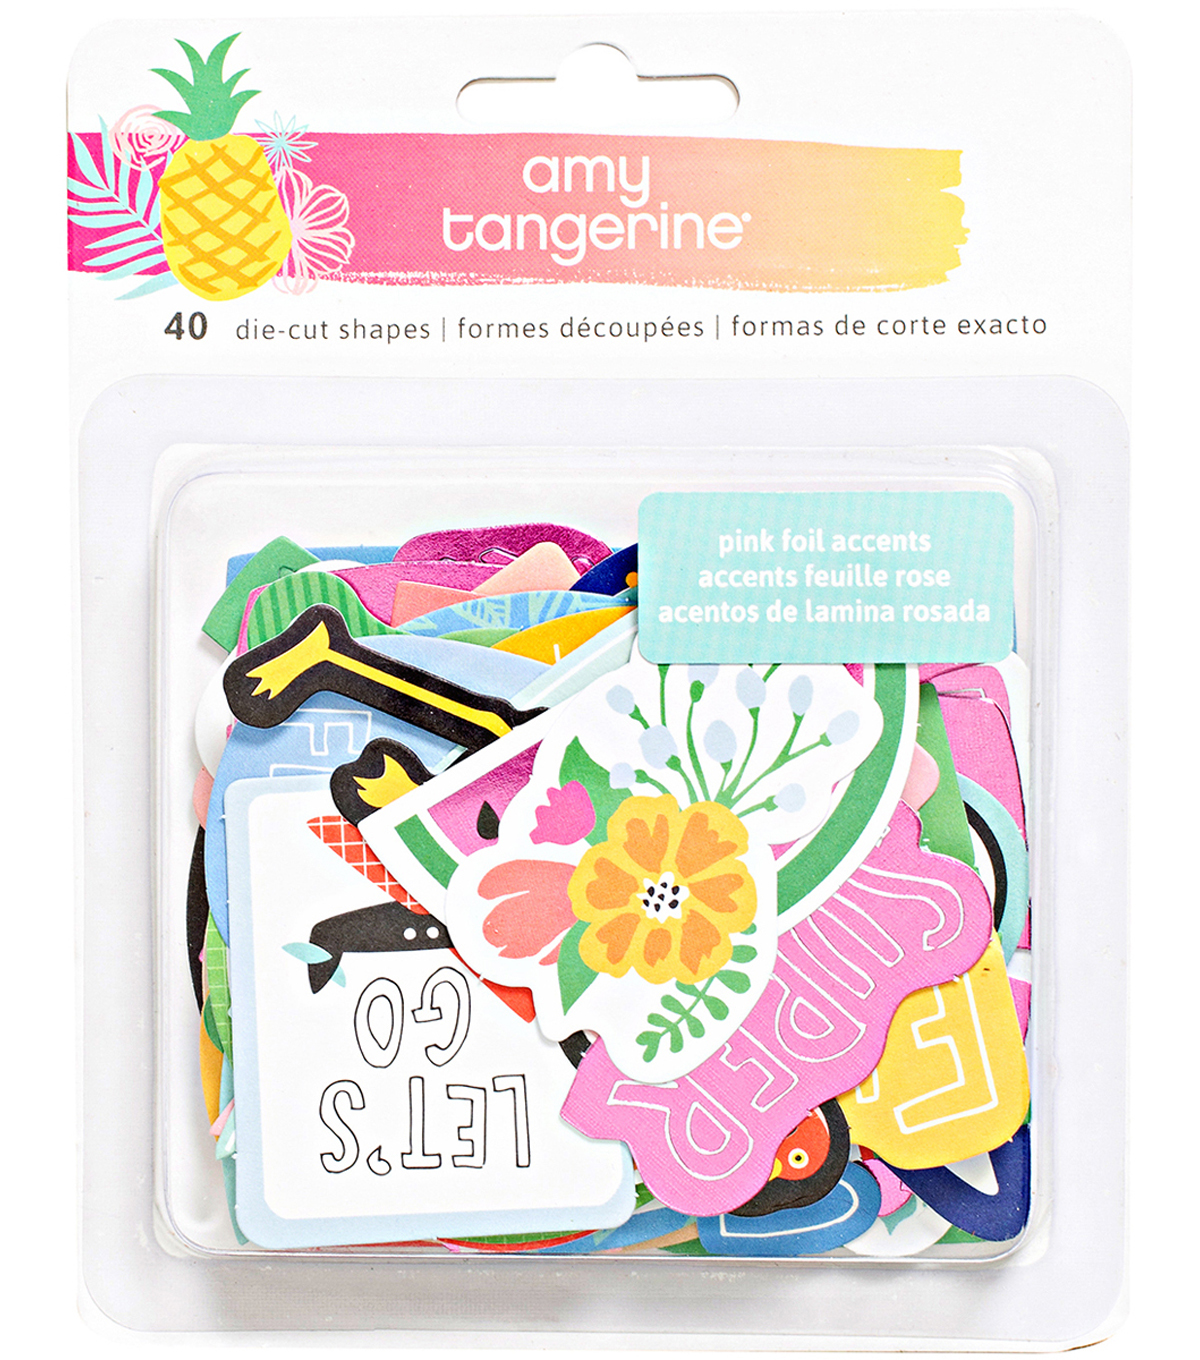 American Crafts Amy Tangerine Ephemera Cardstock Die-Cuts-On A Whim